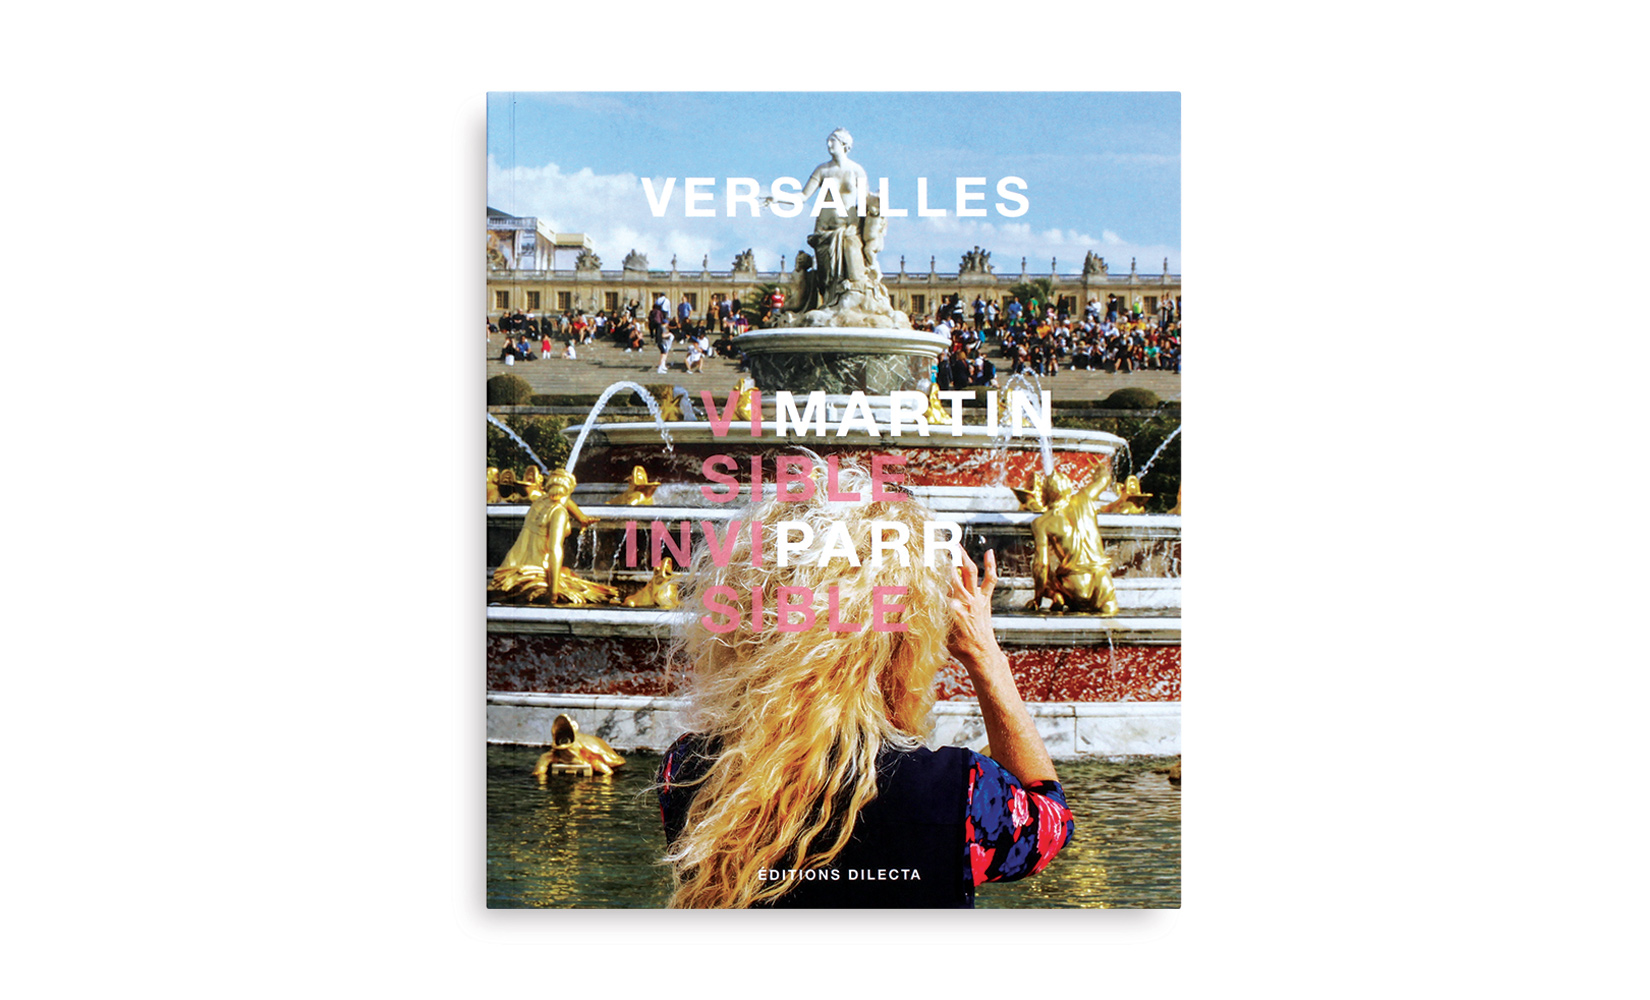 versailles-visible-invisible-toluca-studio-olivier-andreotti-MARTIN-PARR-1.jpg